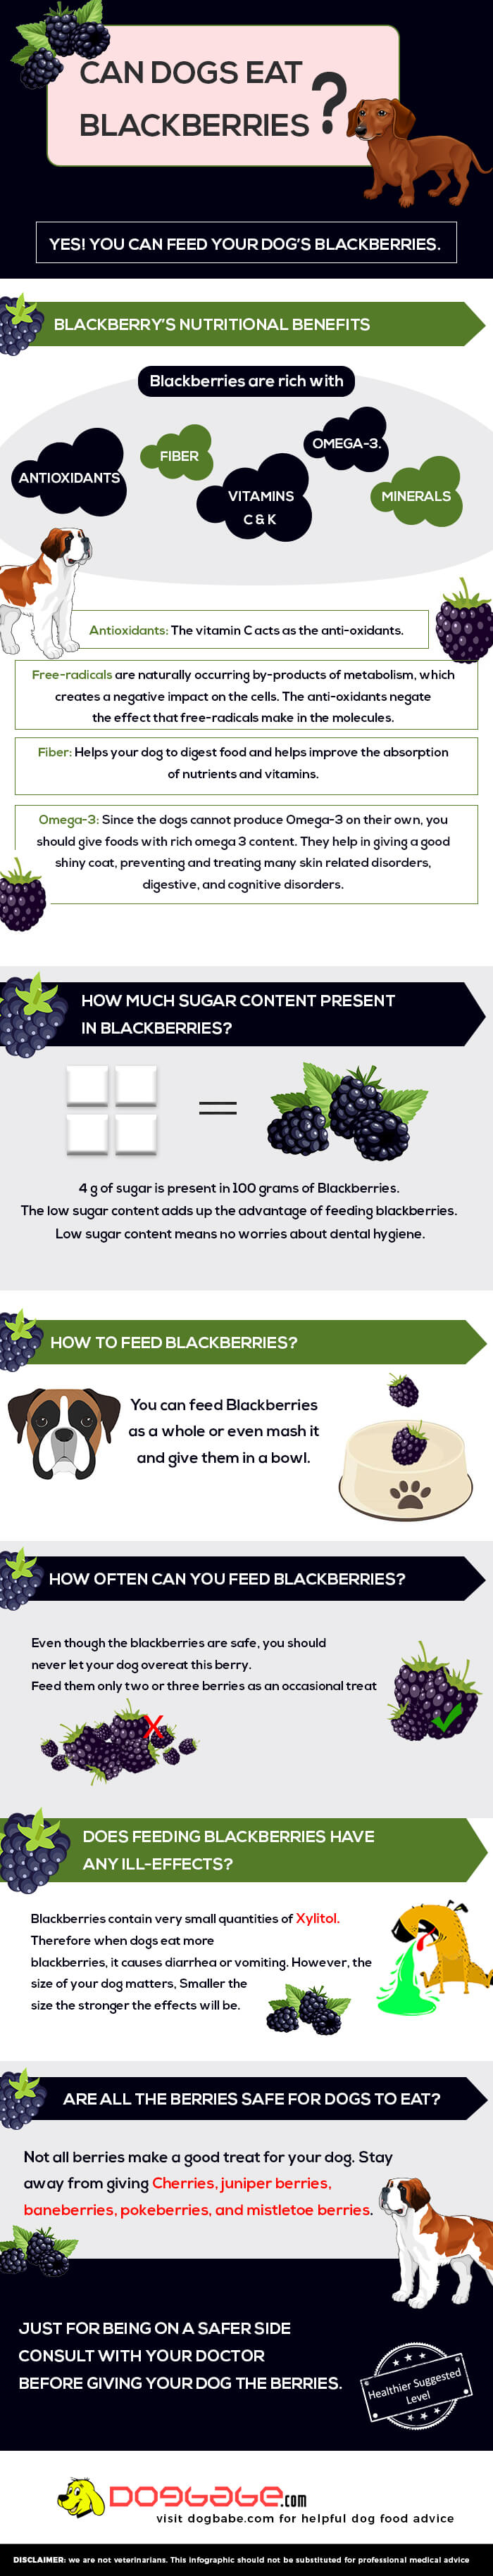 can dogs eat blackberries infographic